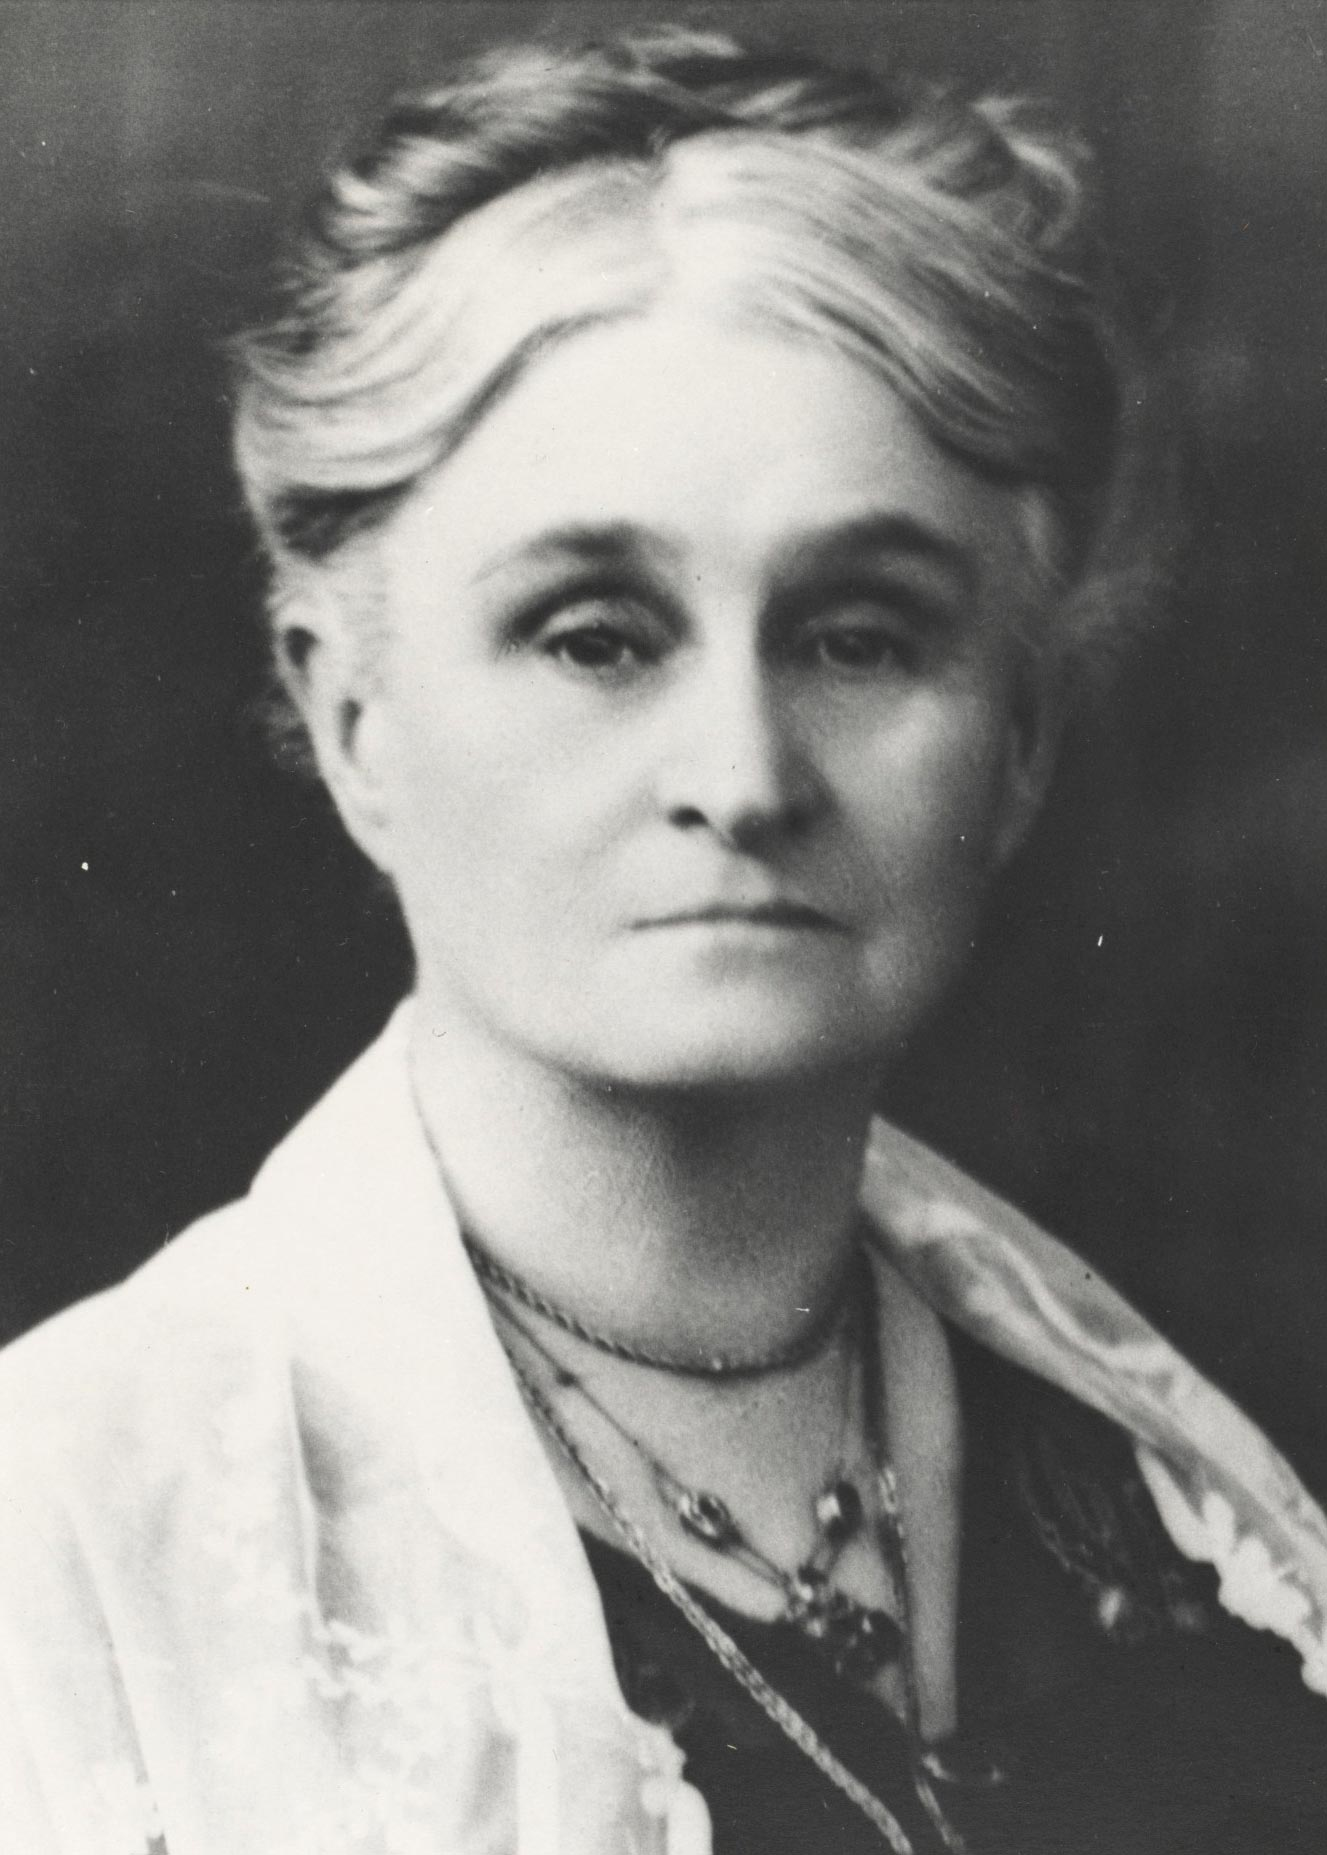 Portrait of Edith Cowan.